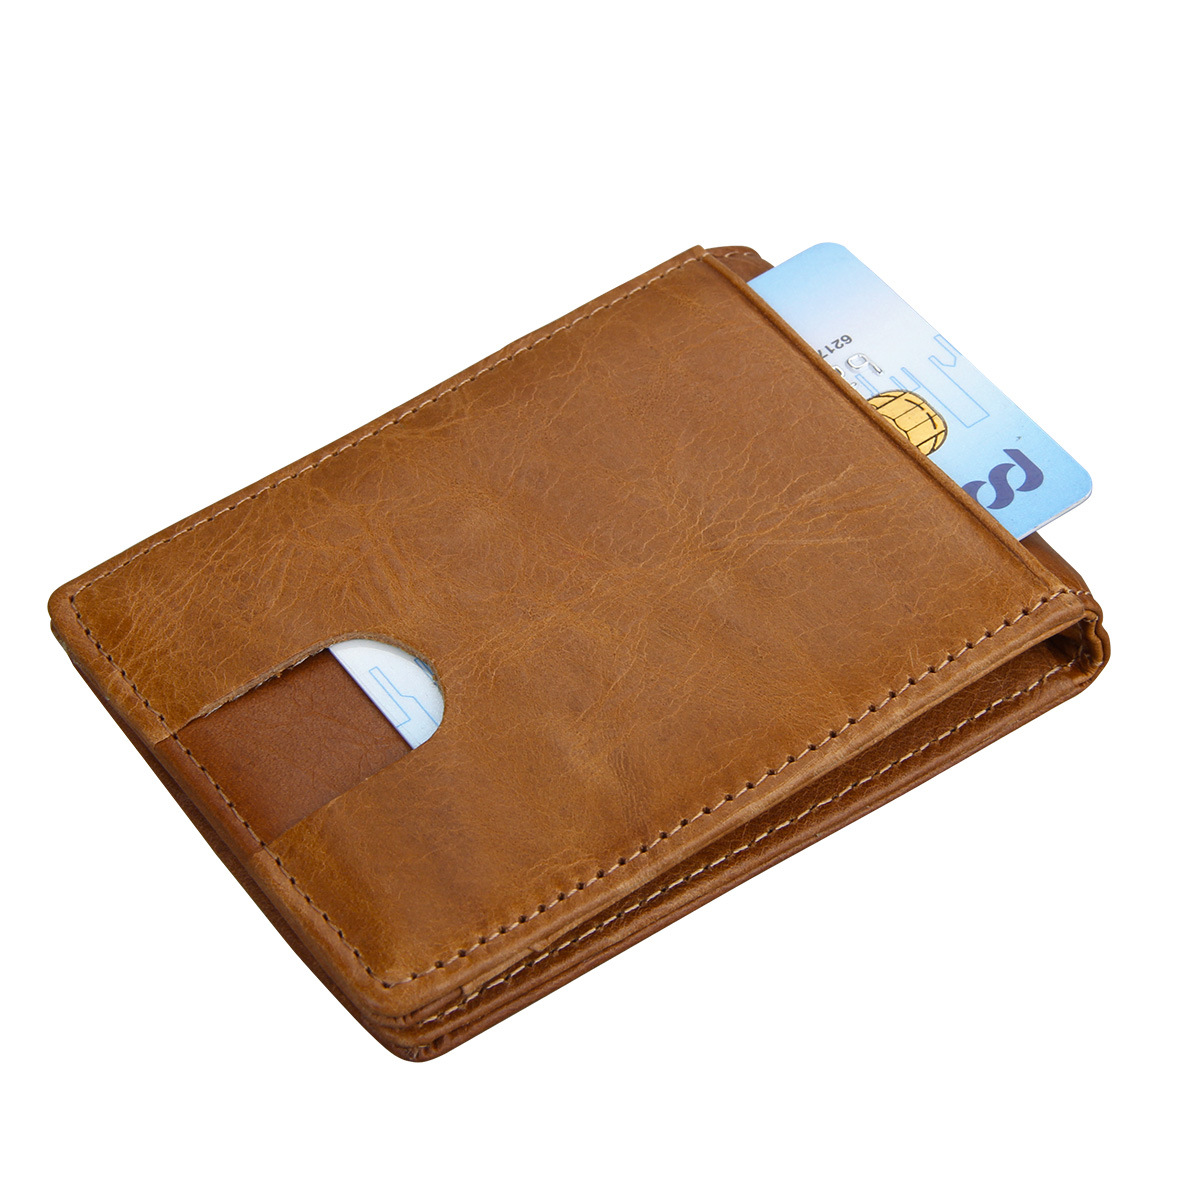 online retailer e21fa 1549f card holder for sale - iOffer